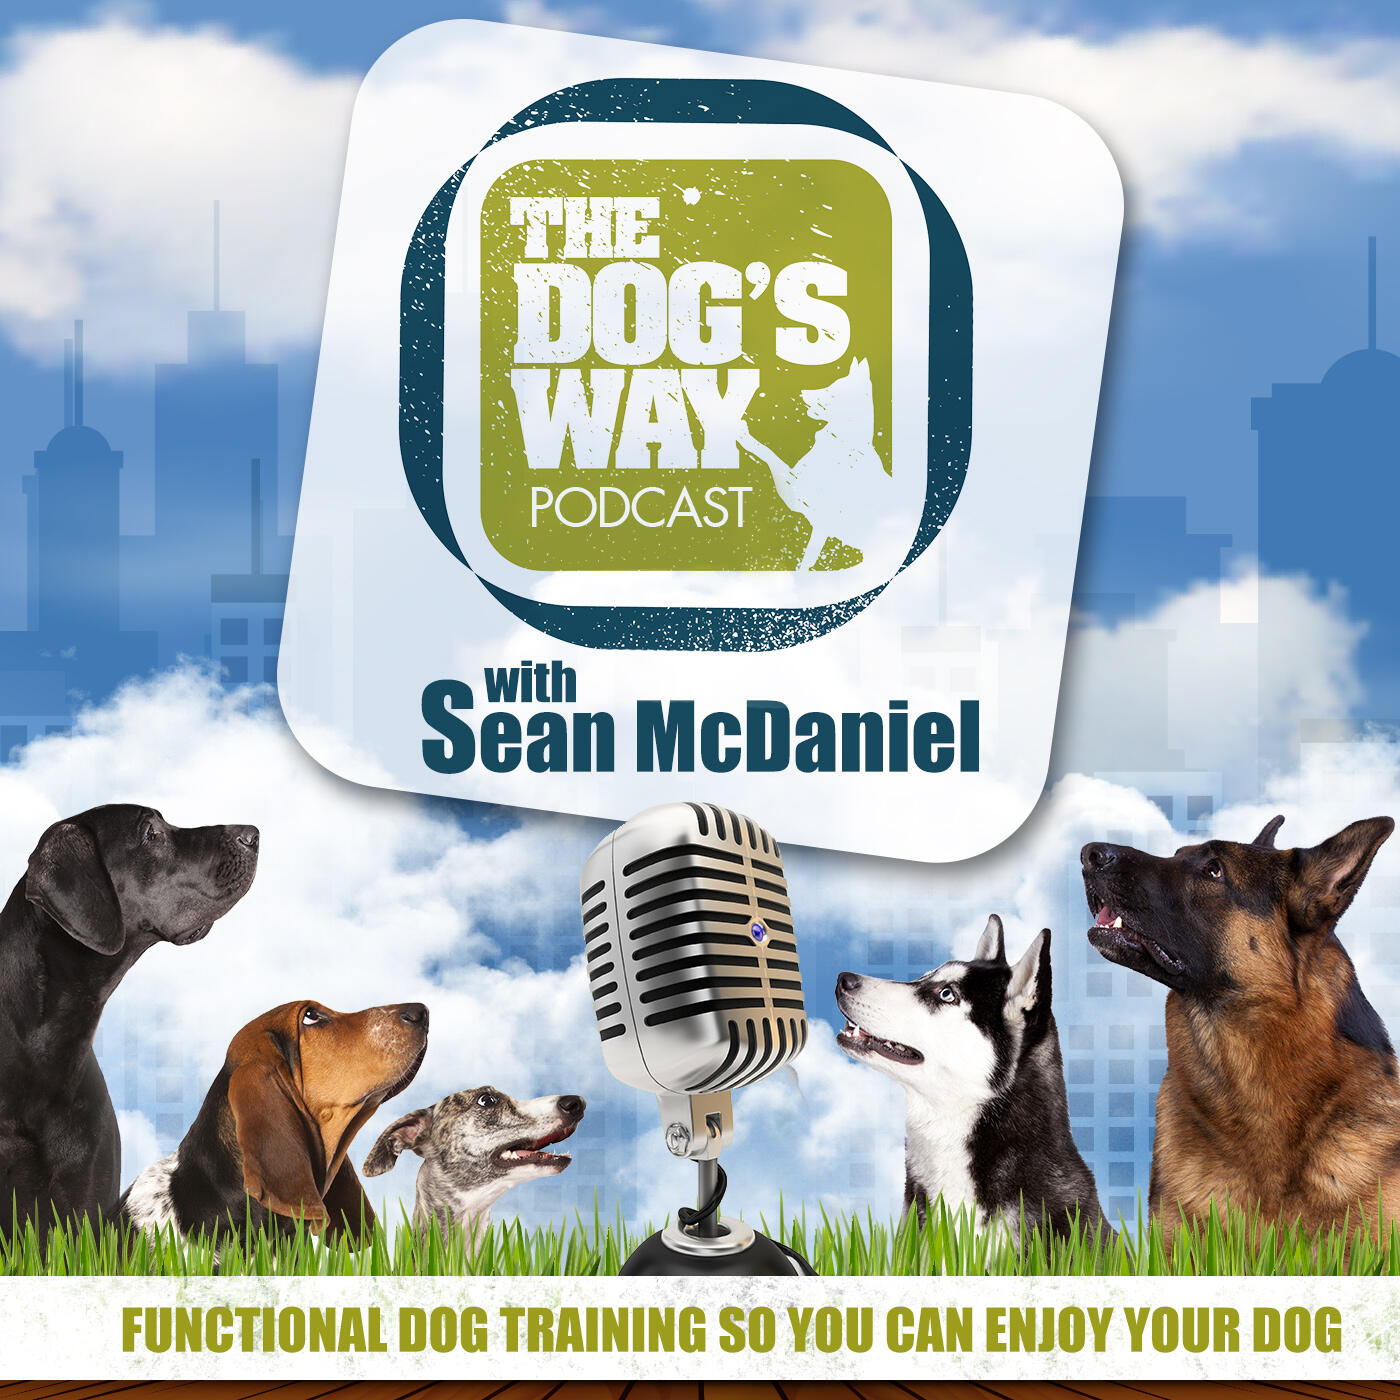 The Dog's Way Podcast: Dog Training for Real Life